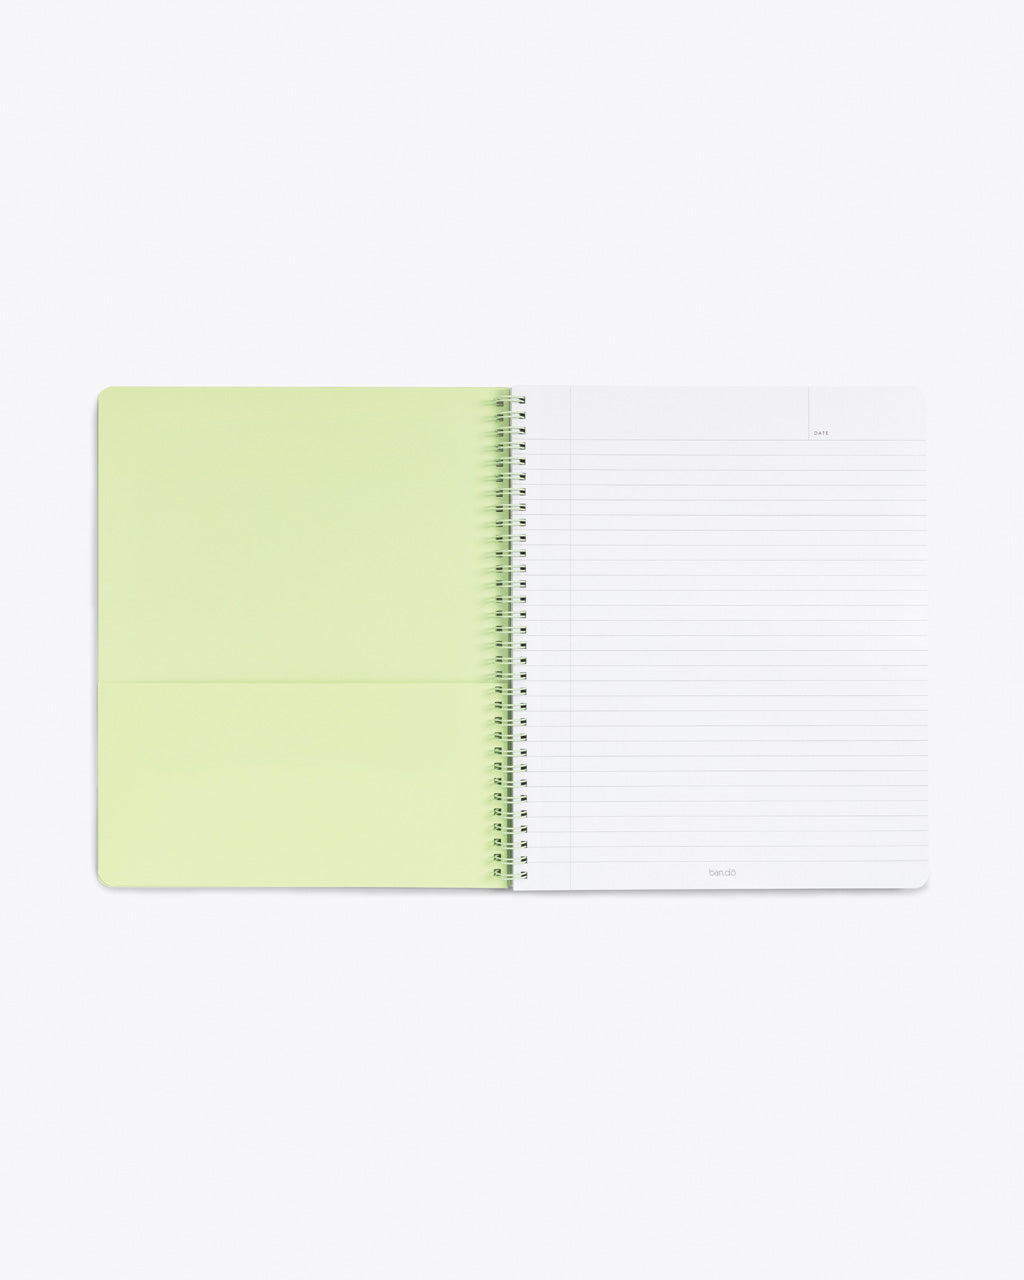 interior image of notebook showing lined pages and pastel green end sheet with pocket